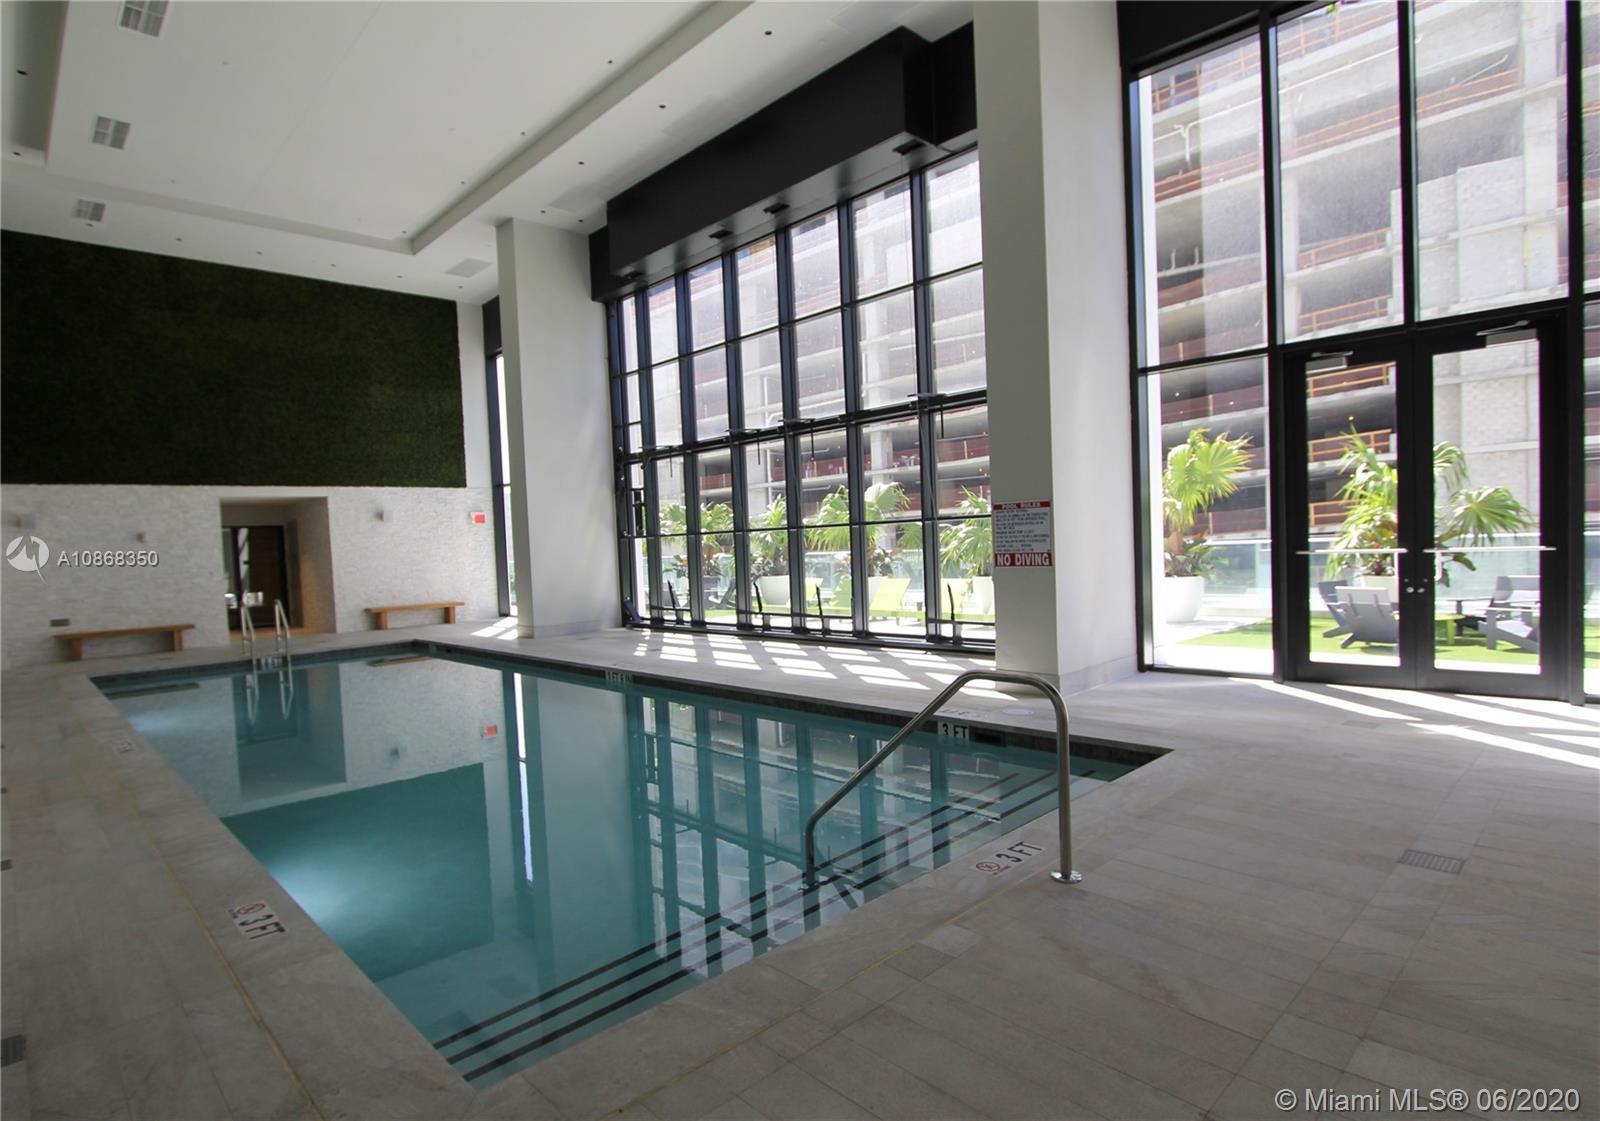 2BR + BIG DEN /3BA SPECTACULAR EAST VIEW, It is really like a 3/3 unit, Modern kitchen cabinets & ap